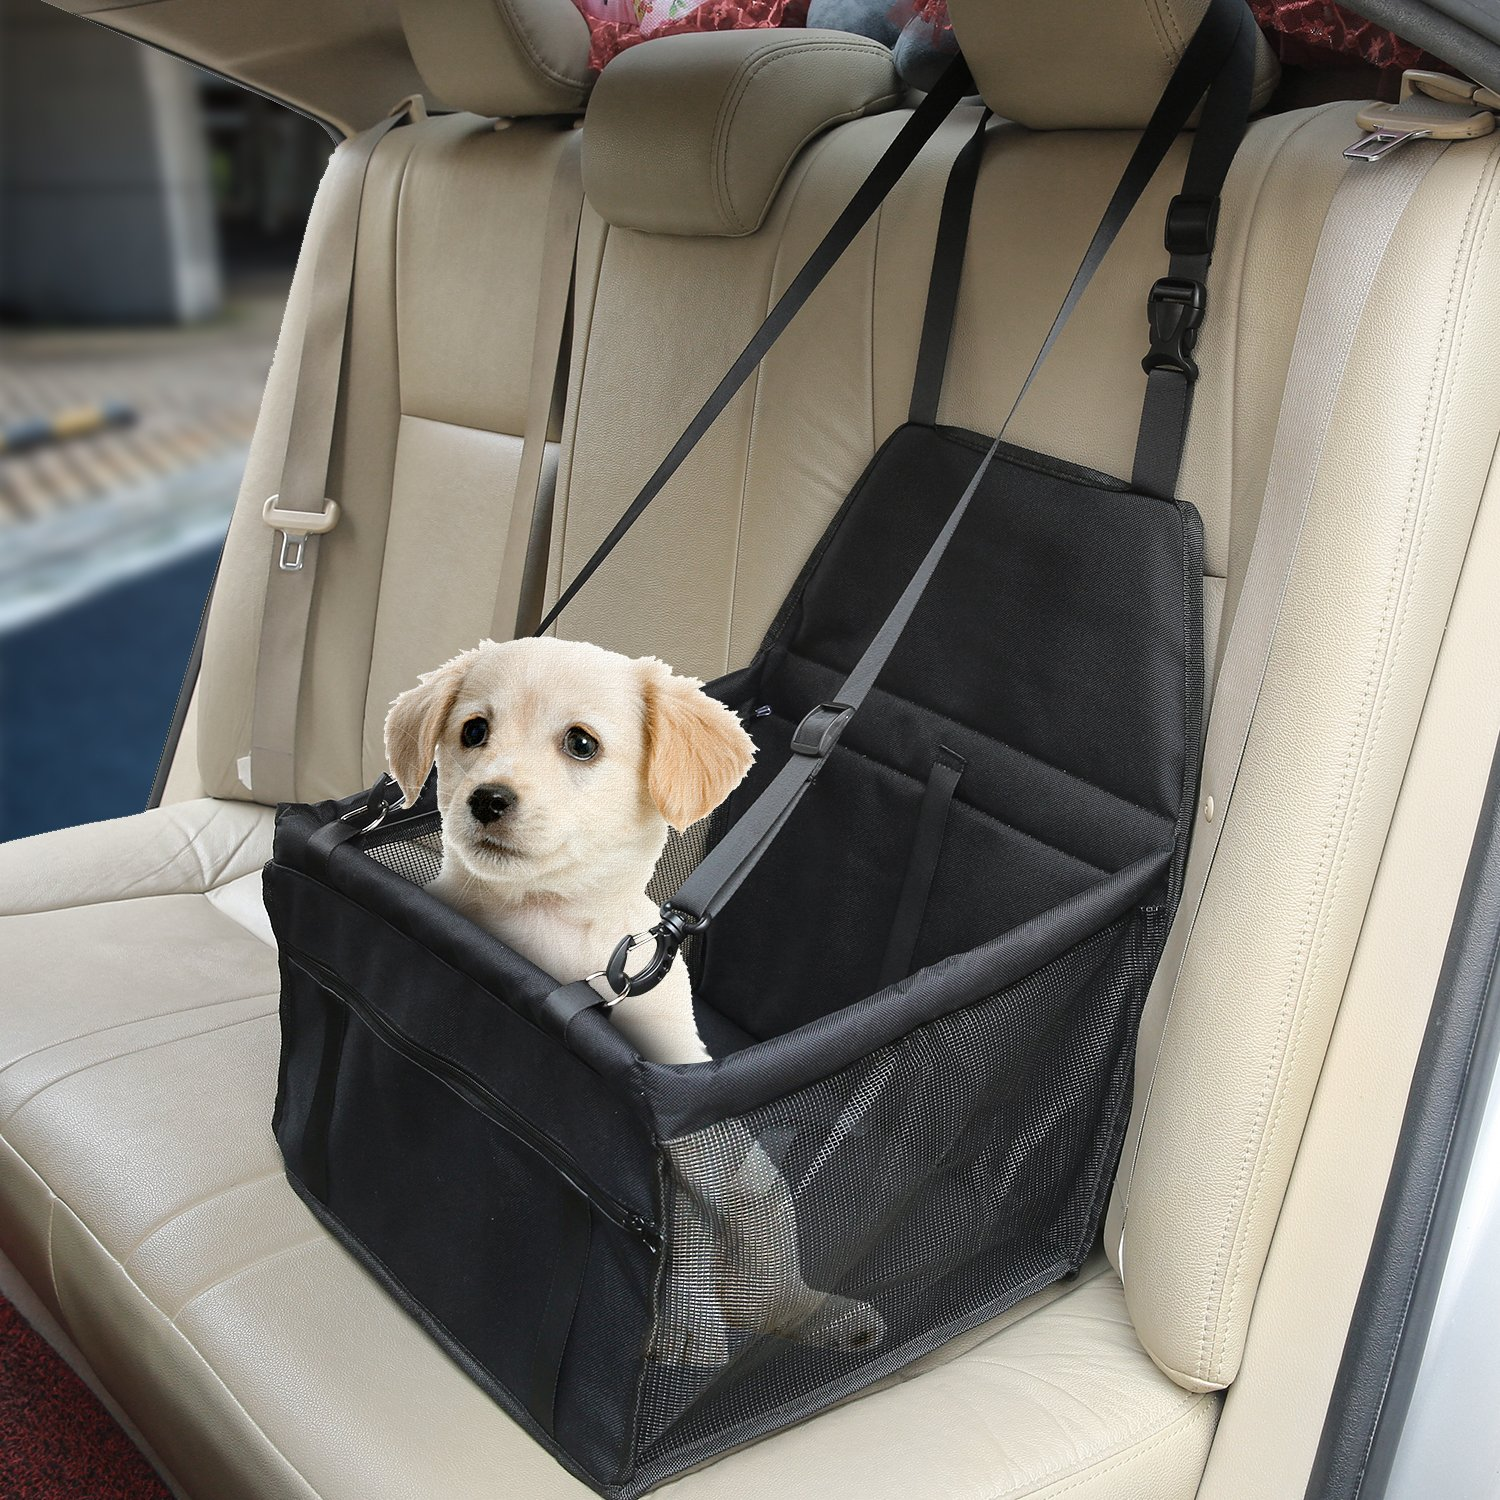 Aandyou Pet Car Booster Seat Breathable Waterproof Pet Dog Car Supplies  Travel Pet Car Carrier Bag Seat Protector Cover with Safety Leash for Small